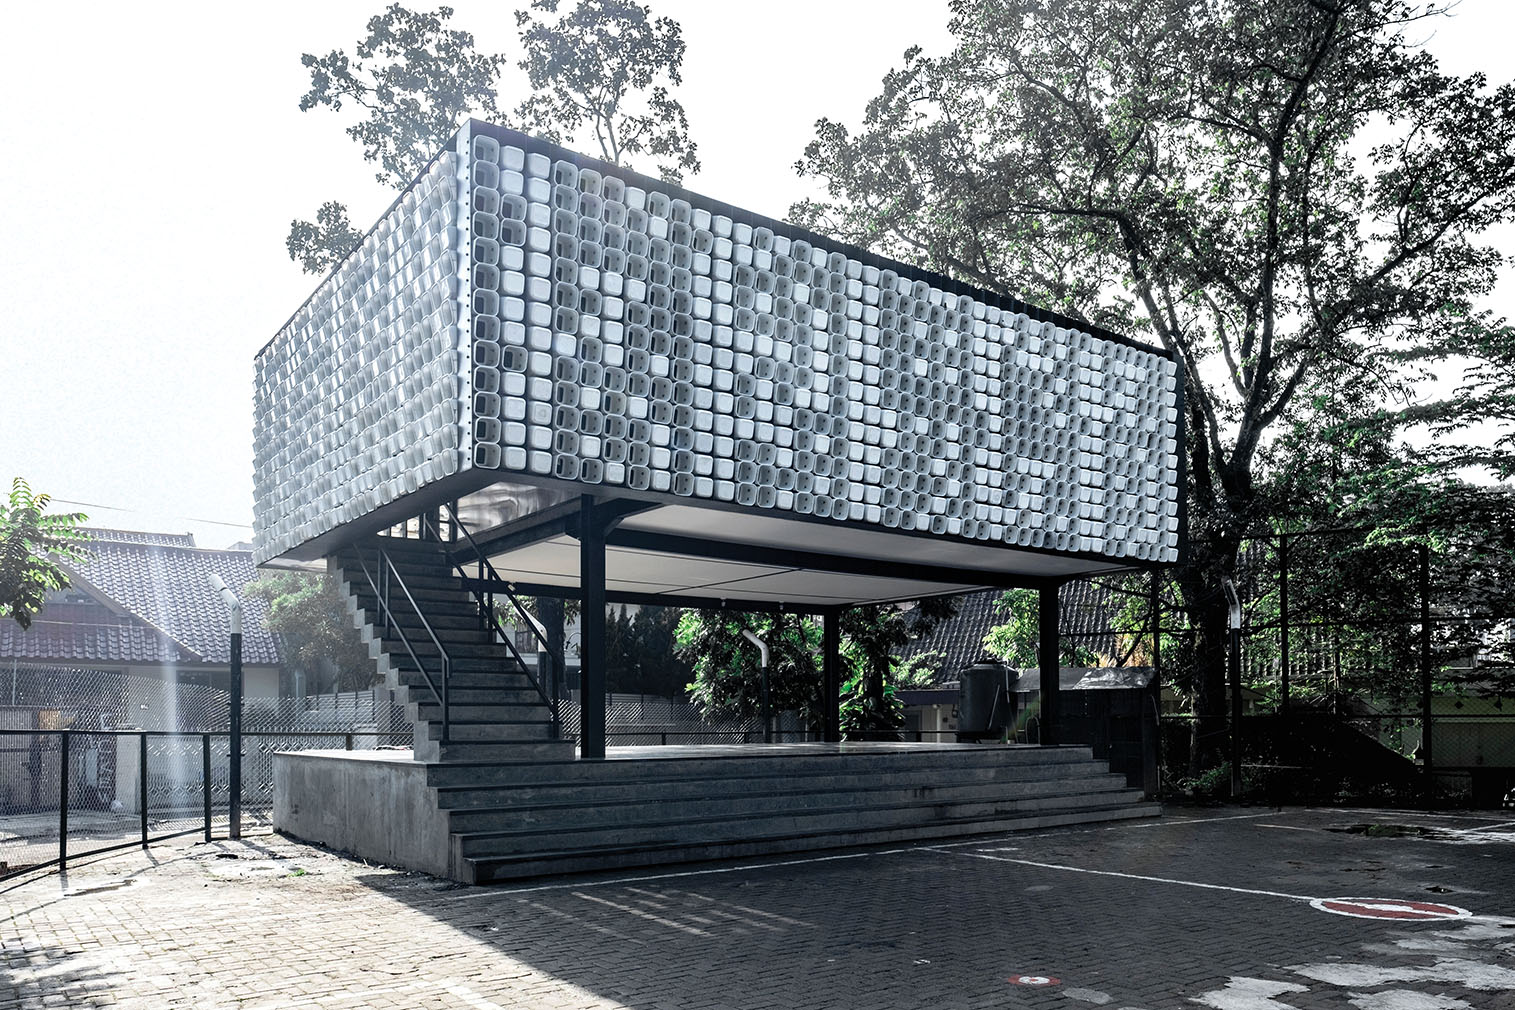 Microlibrary at Taman Bima, Indonesia, by SHAU Indonesia